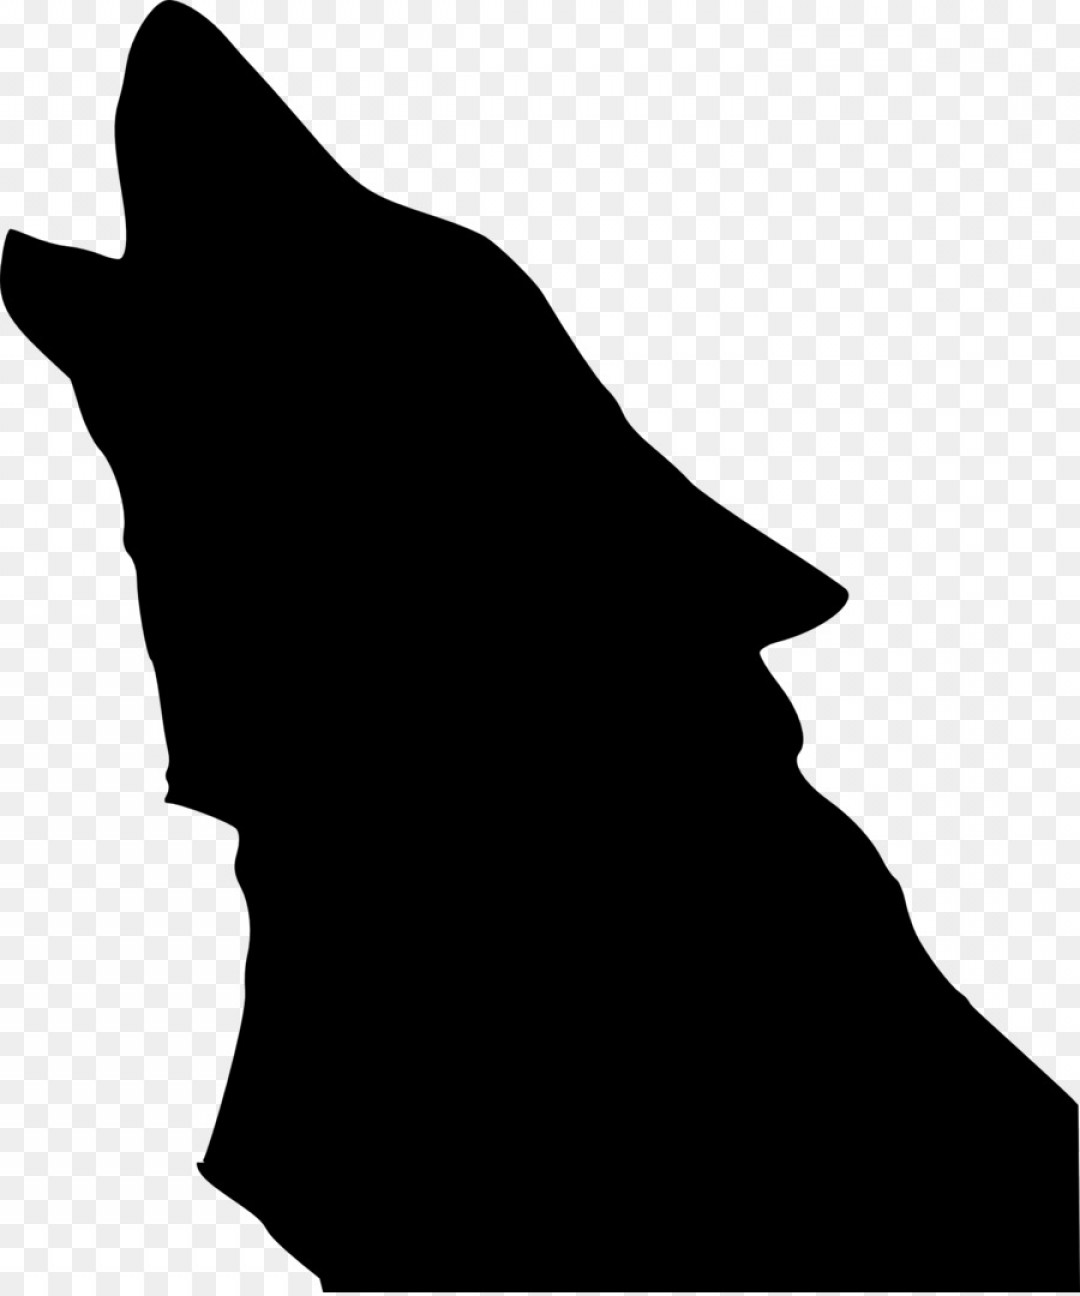 1080x1296 Png Gray Wolf Drawing Silhouette Clip Art Wolf Vector Sohadacouri